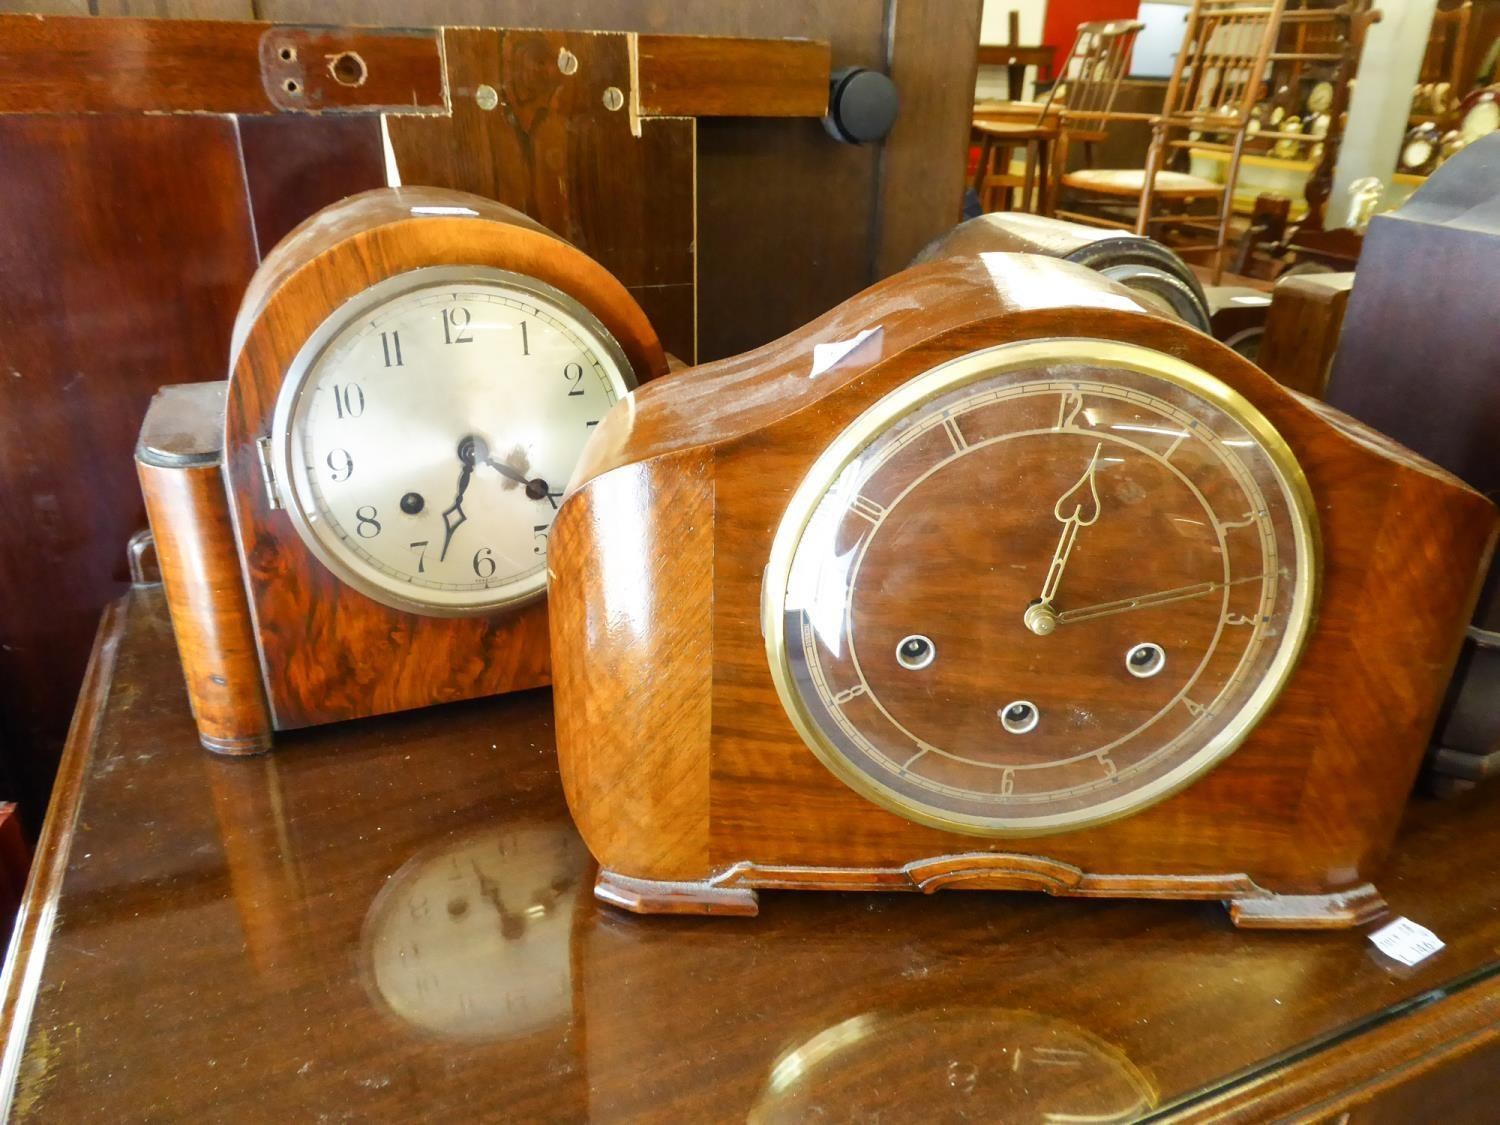 Lot 159 - SMITHS CIRCA 1940's WALNUT WOOD CASED MANTEL CLOCK WITH MOVEMENT STRIKING, CHIMING ON FOUR HOURS, 13